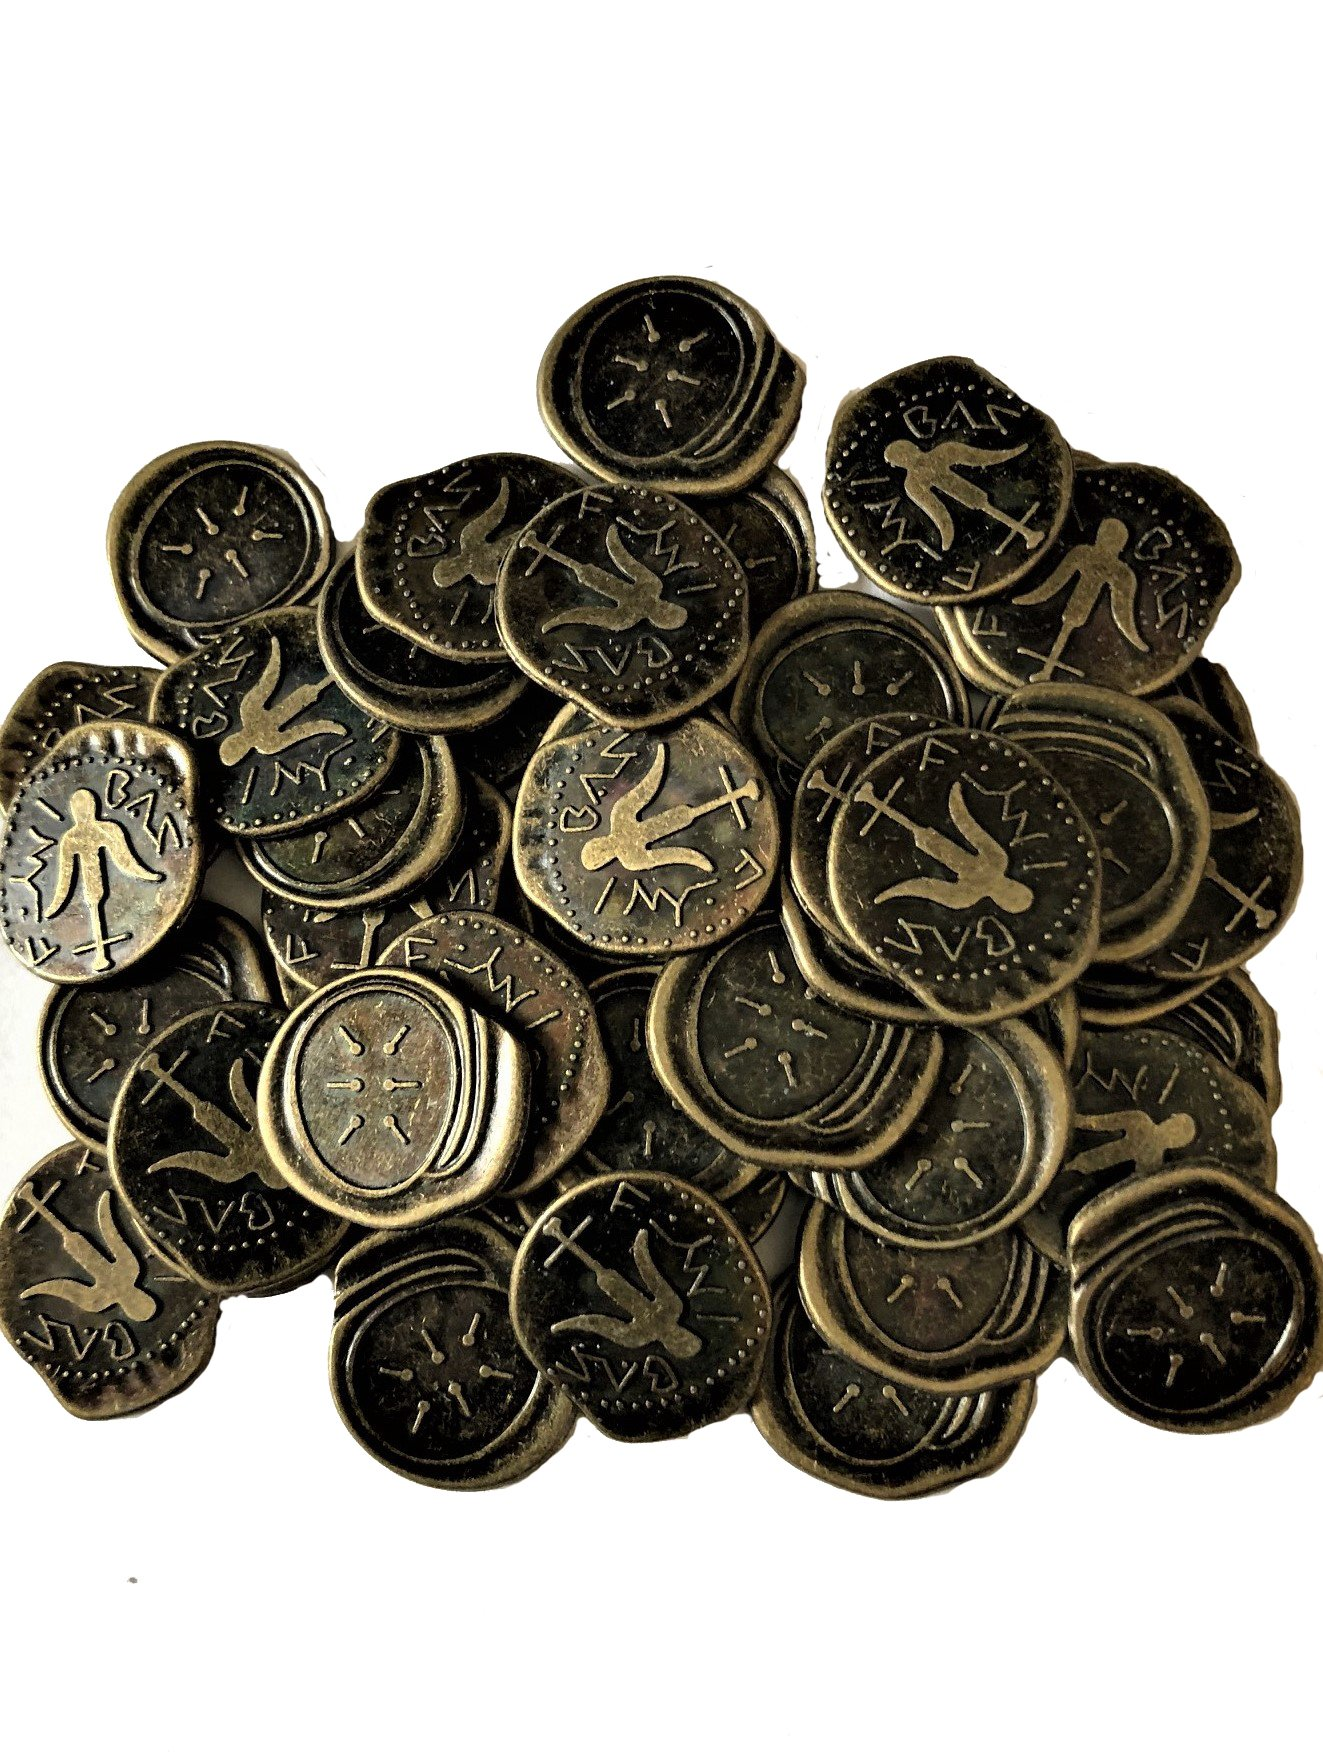 Widow's Mite Coins Reproduction Antique Bronze Bags of 50